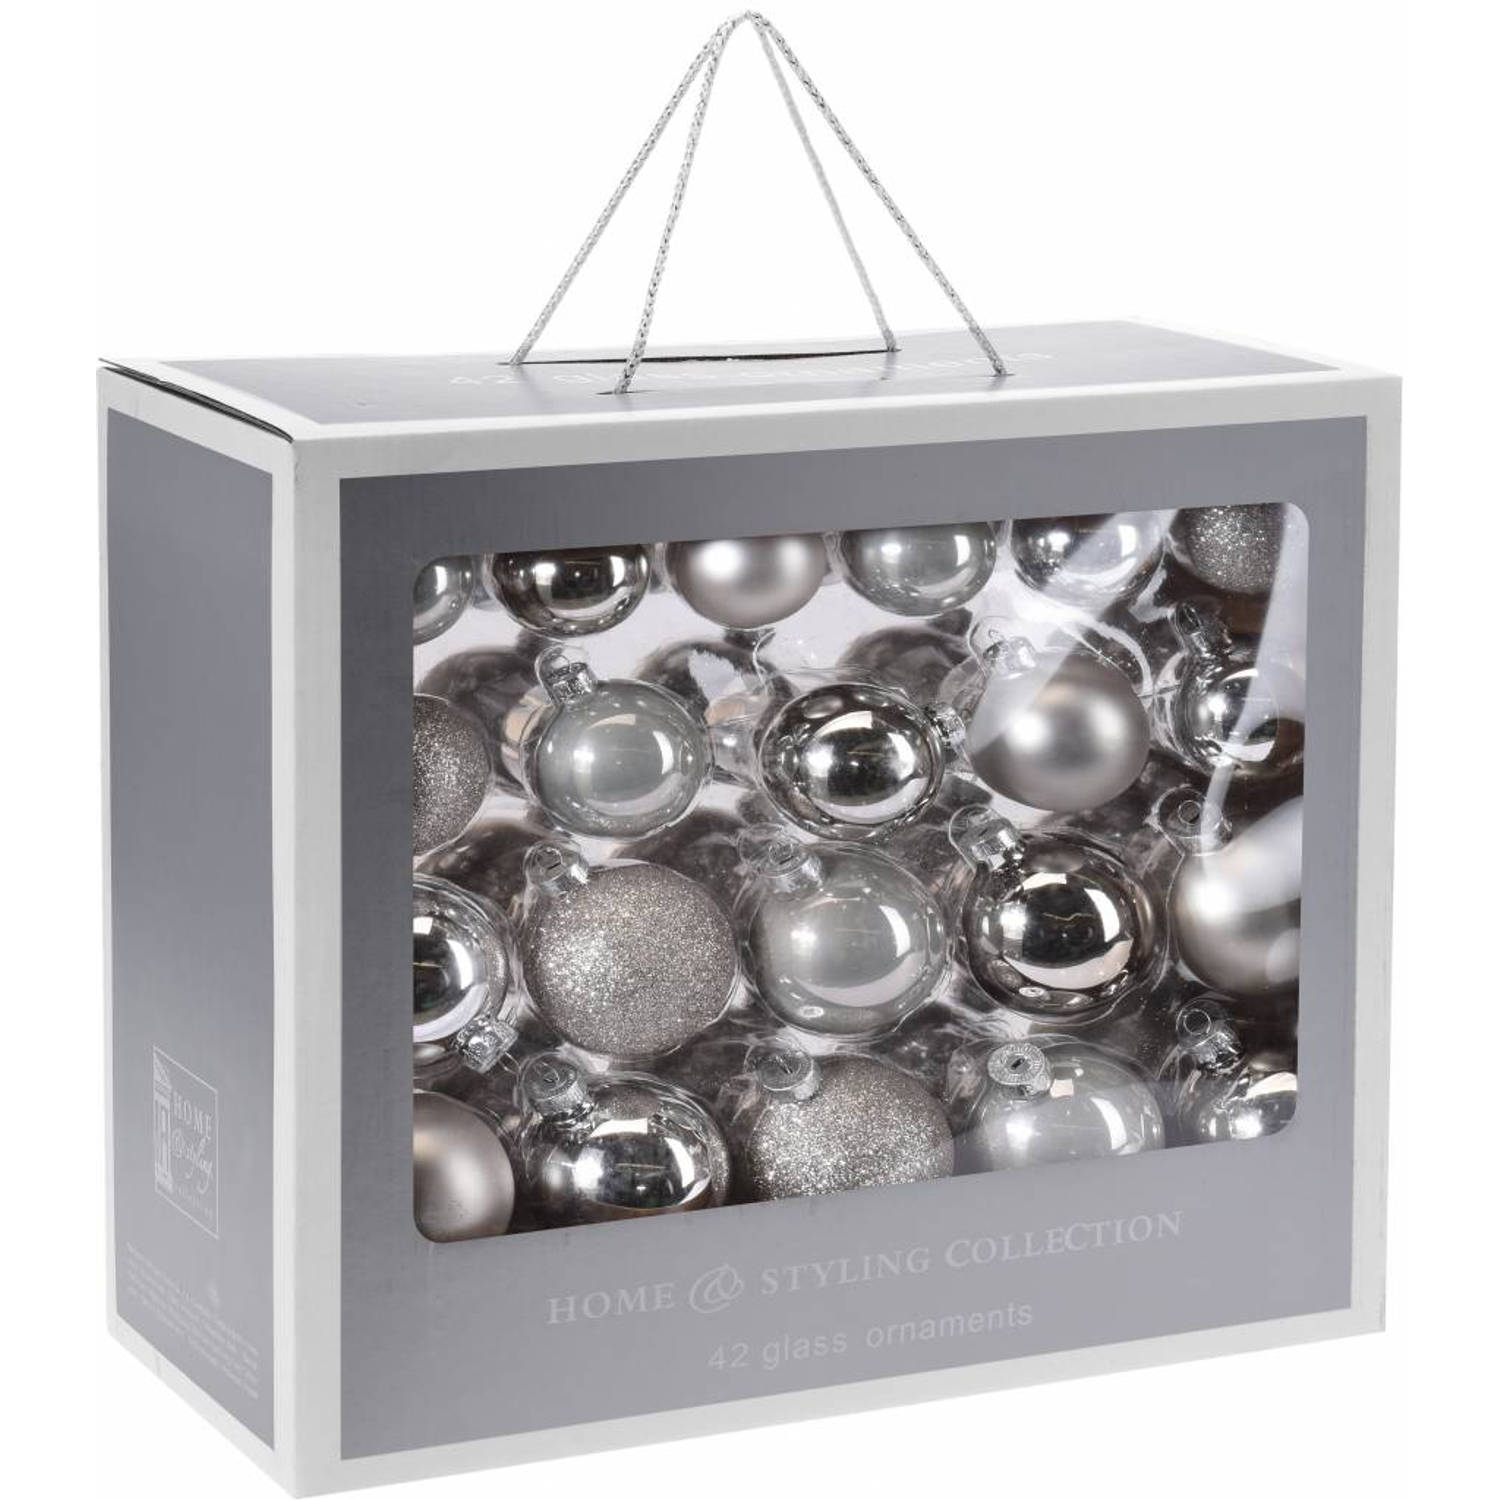 Home & Styling Collection 42-Delige glazen kerstballen set Treasure